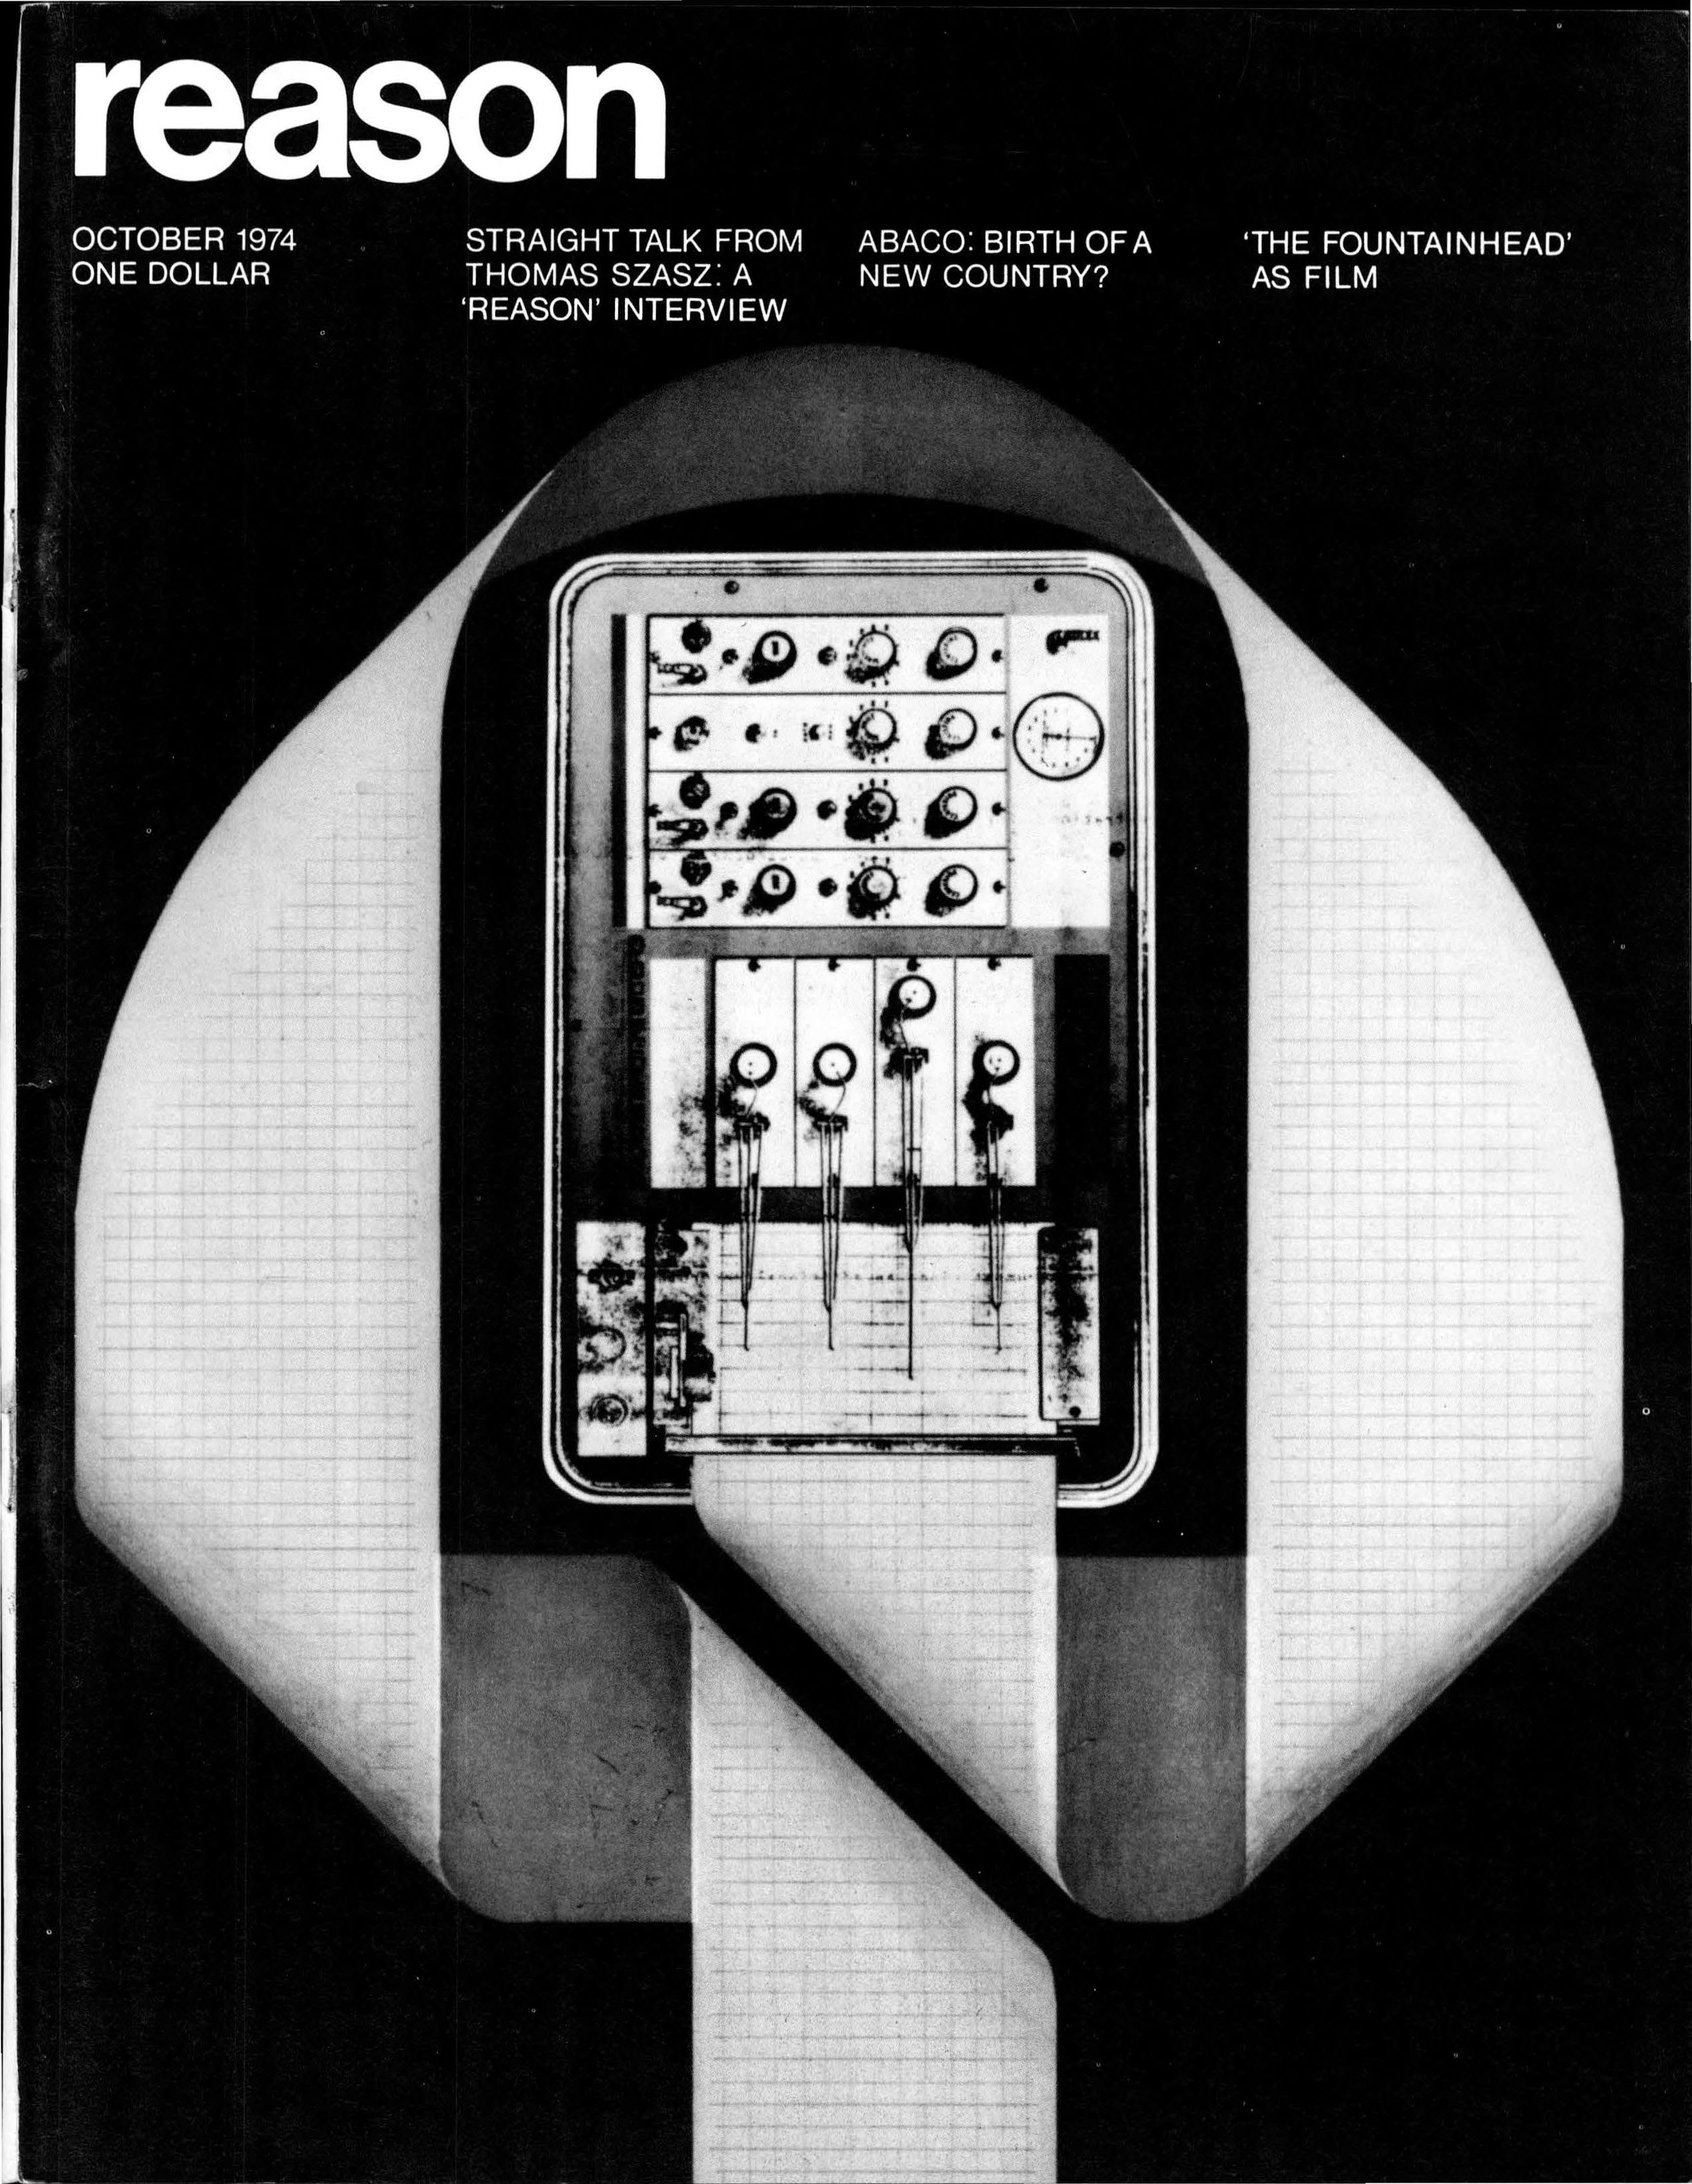 Reason Magazine, October 1974 cover image